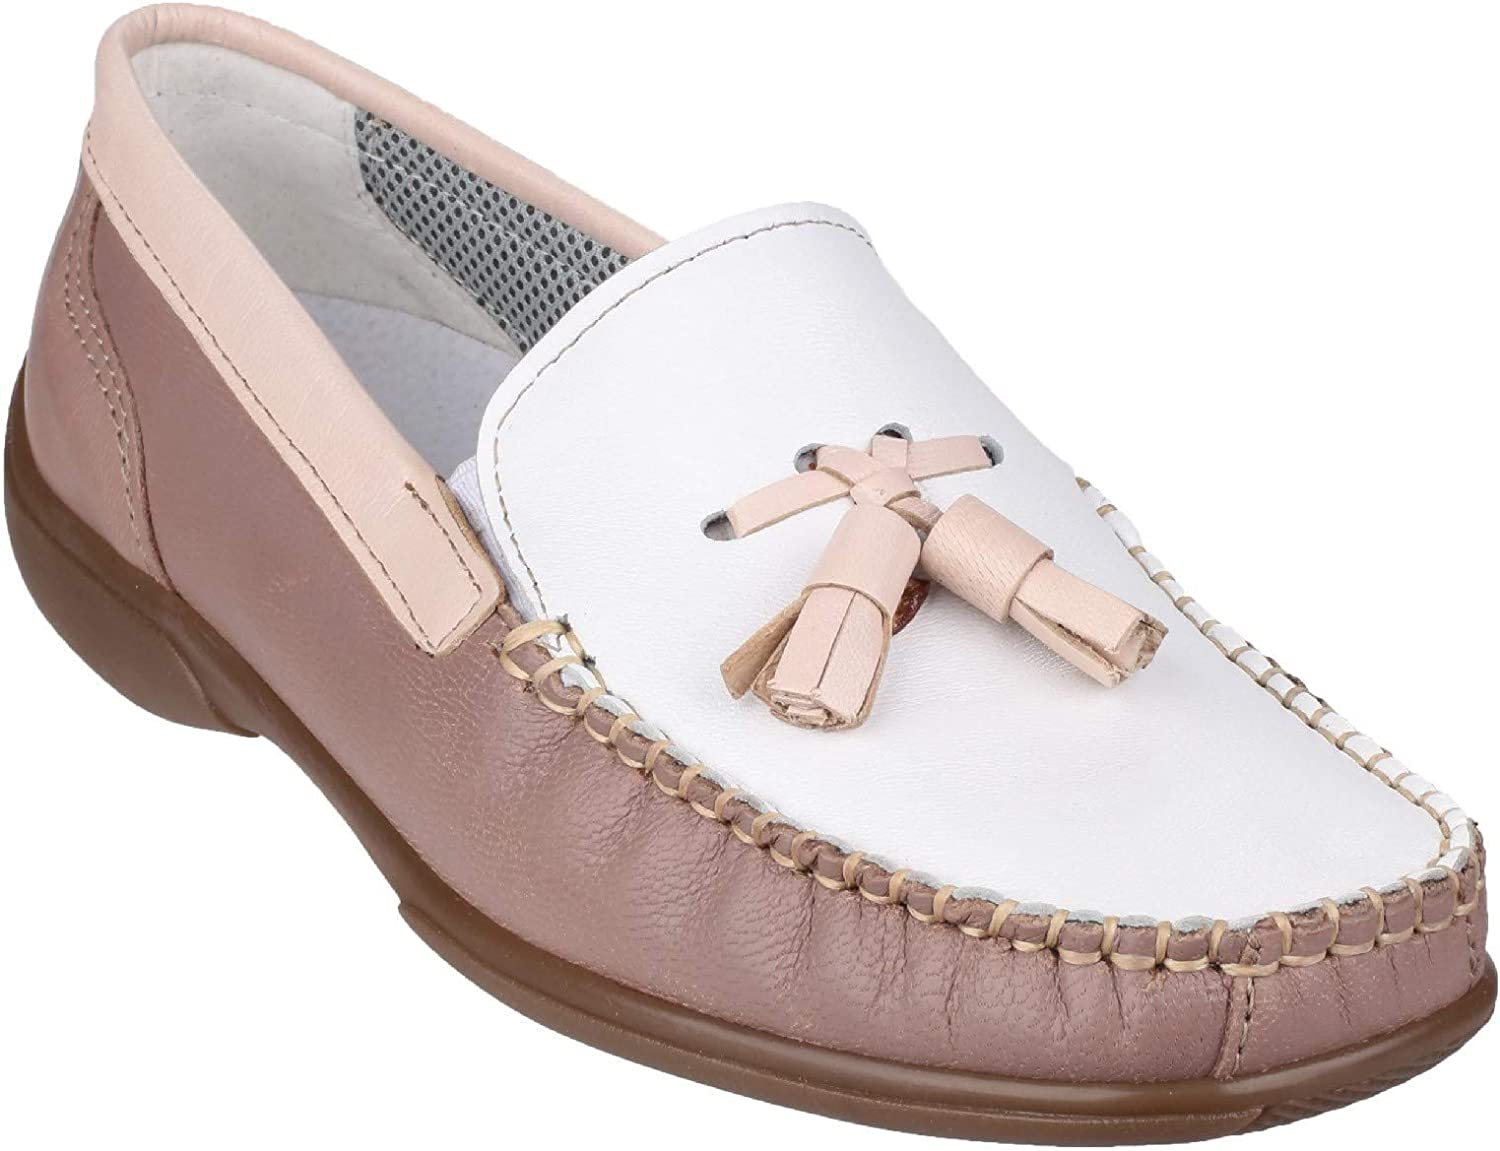 Cotswold Womens Biddlestone Slip On Loafer shoes White Beige Tan Size UK 8 EU 42